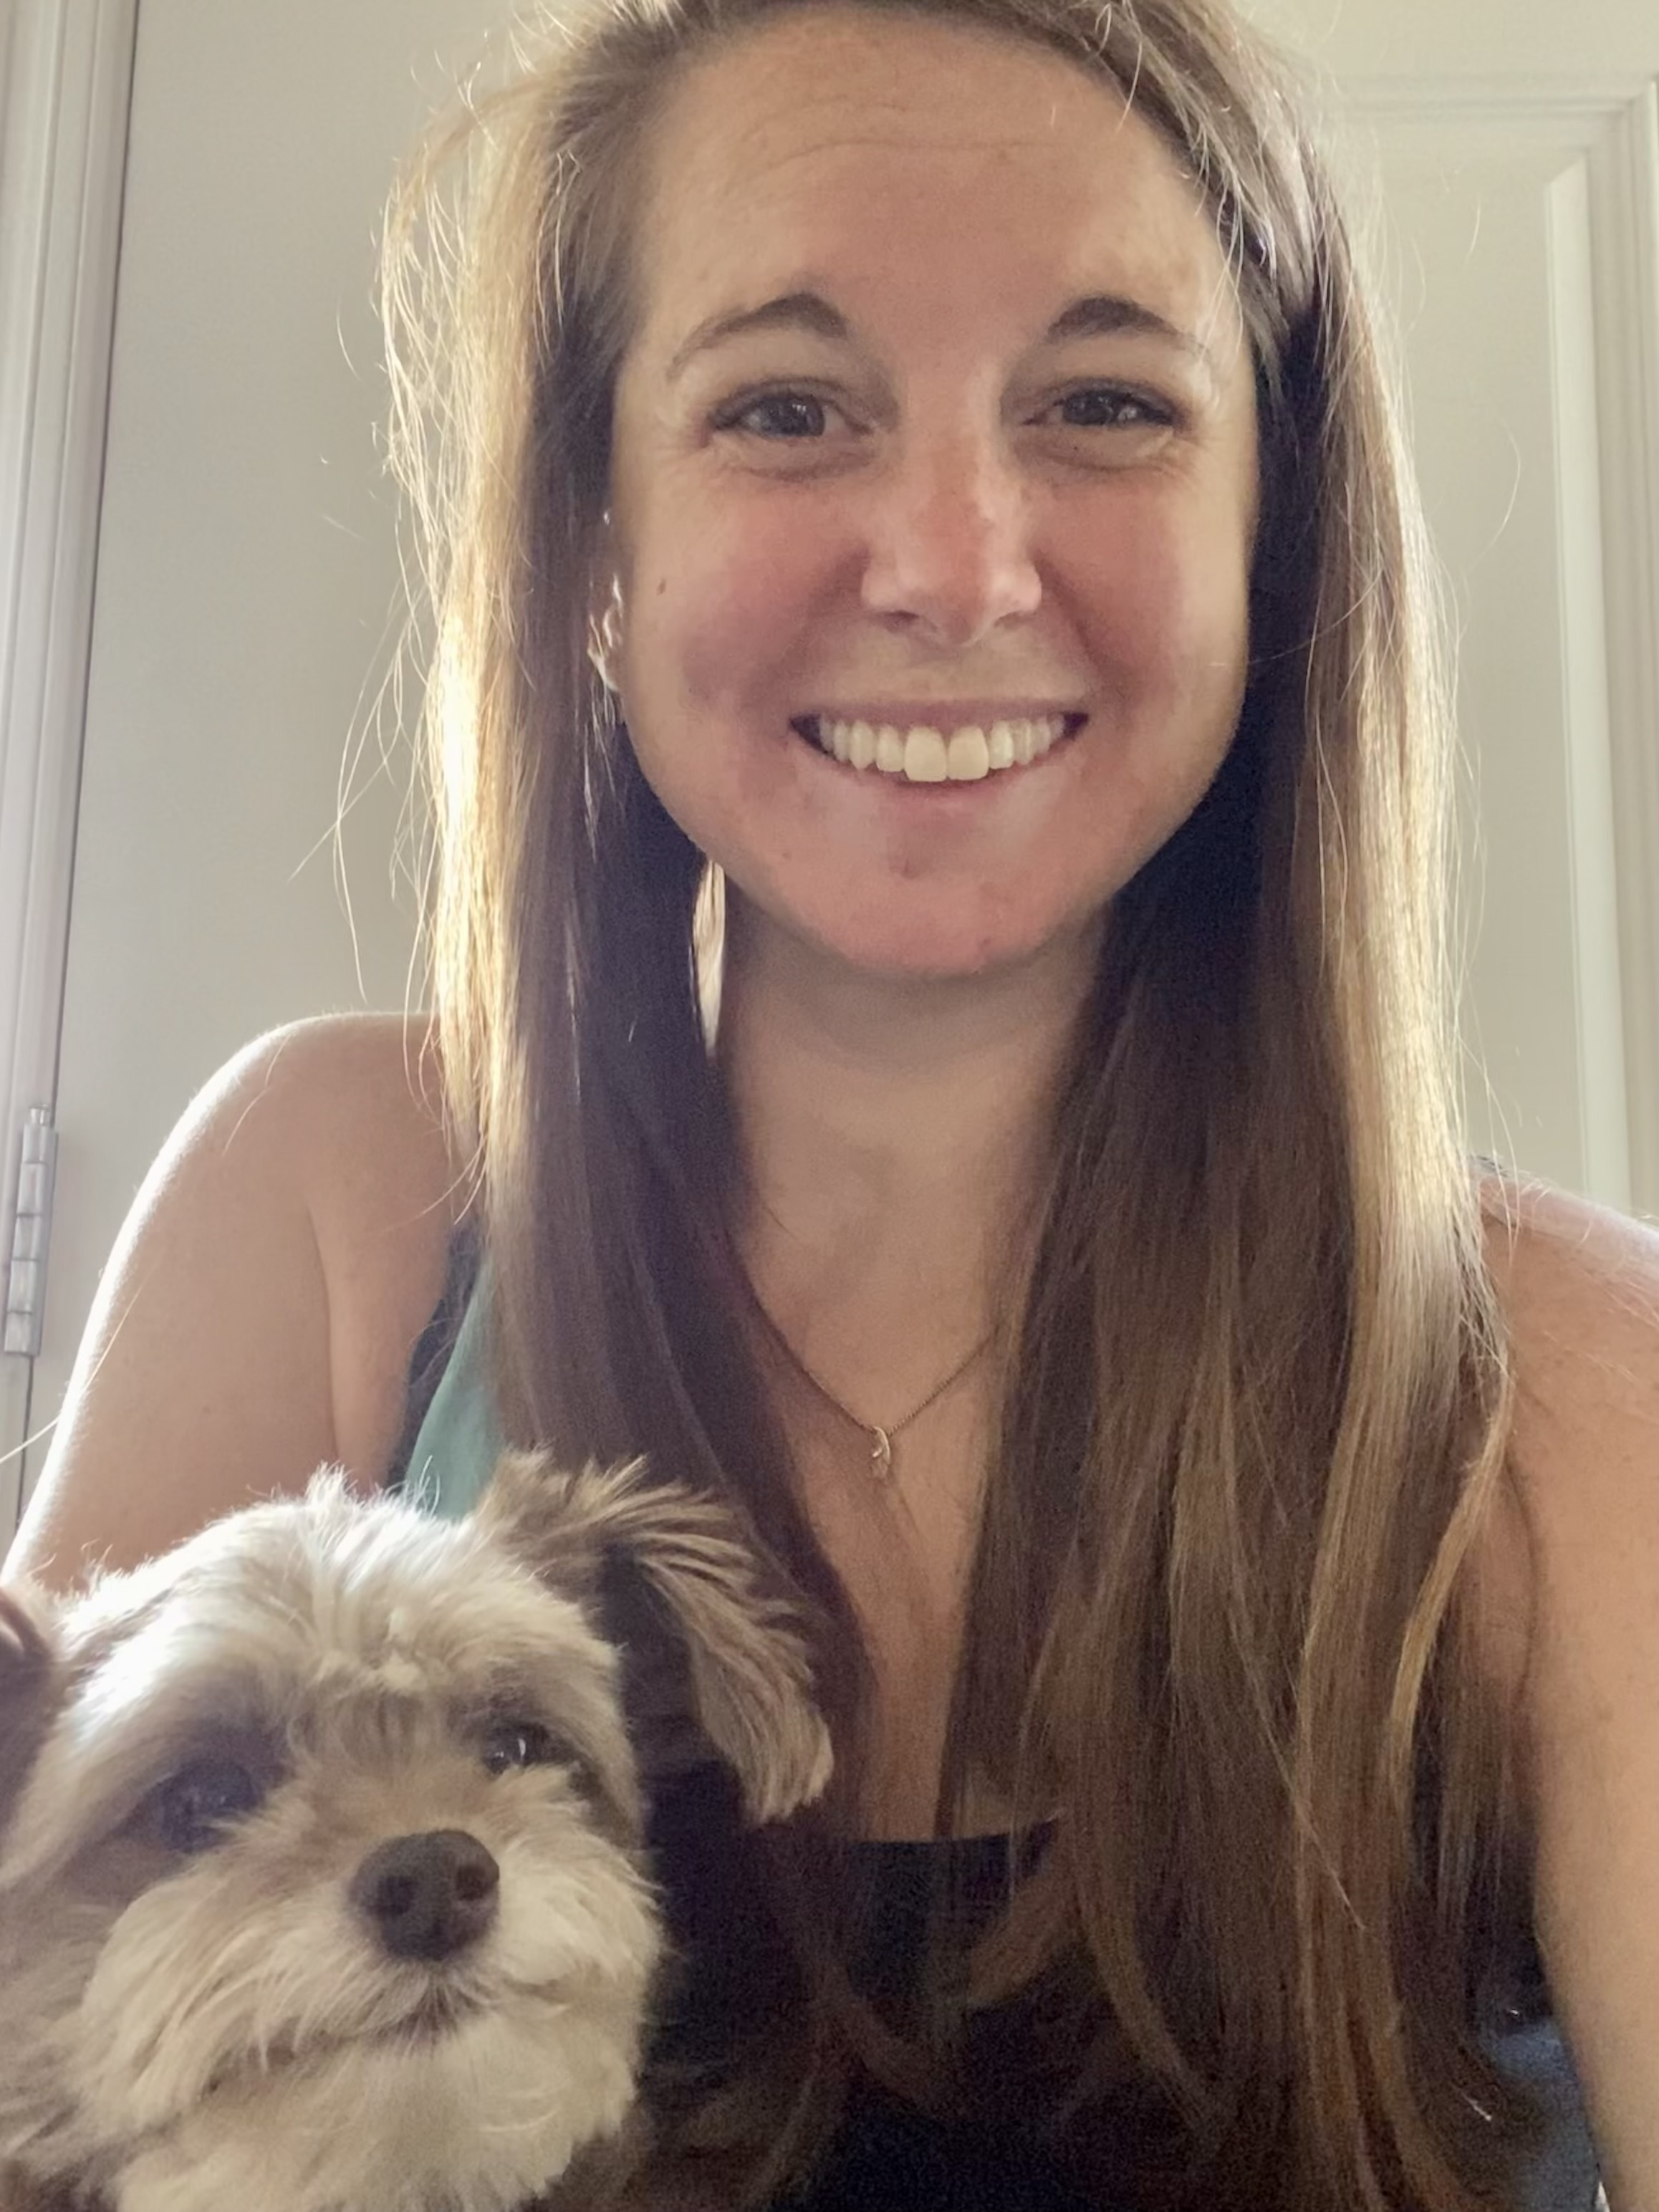 selfie of Kristin and her dog